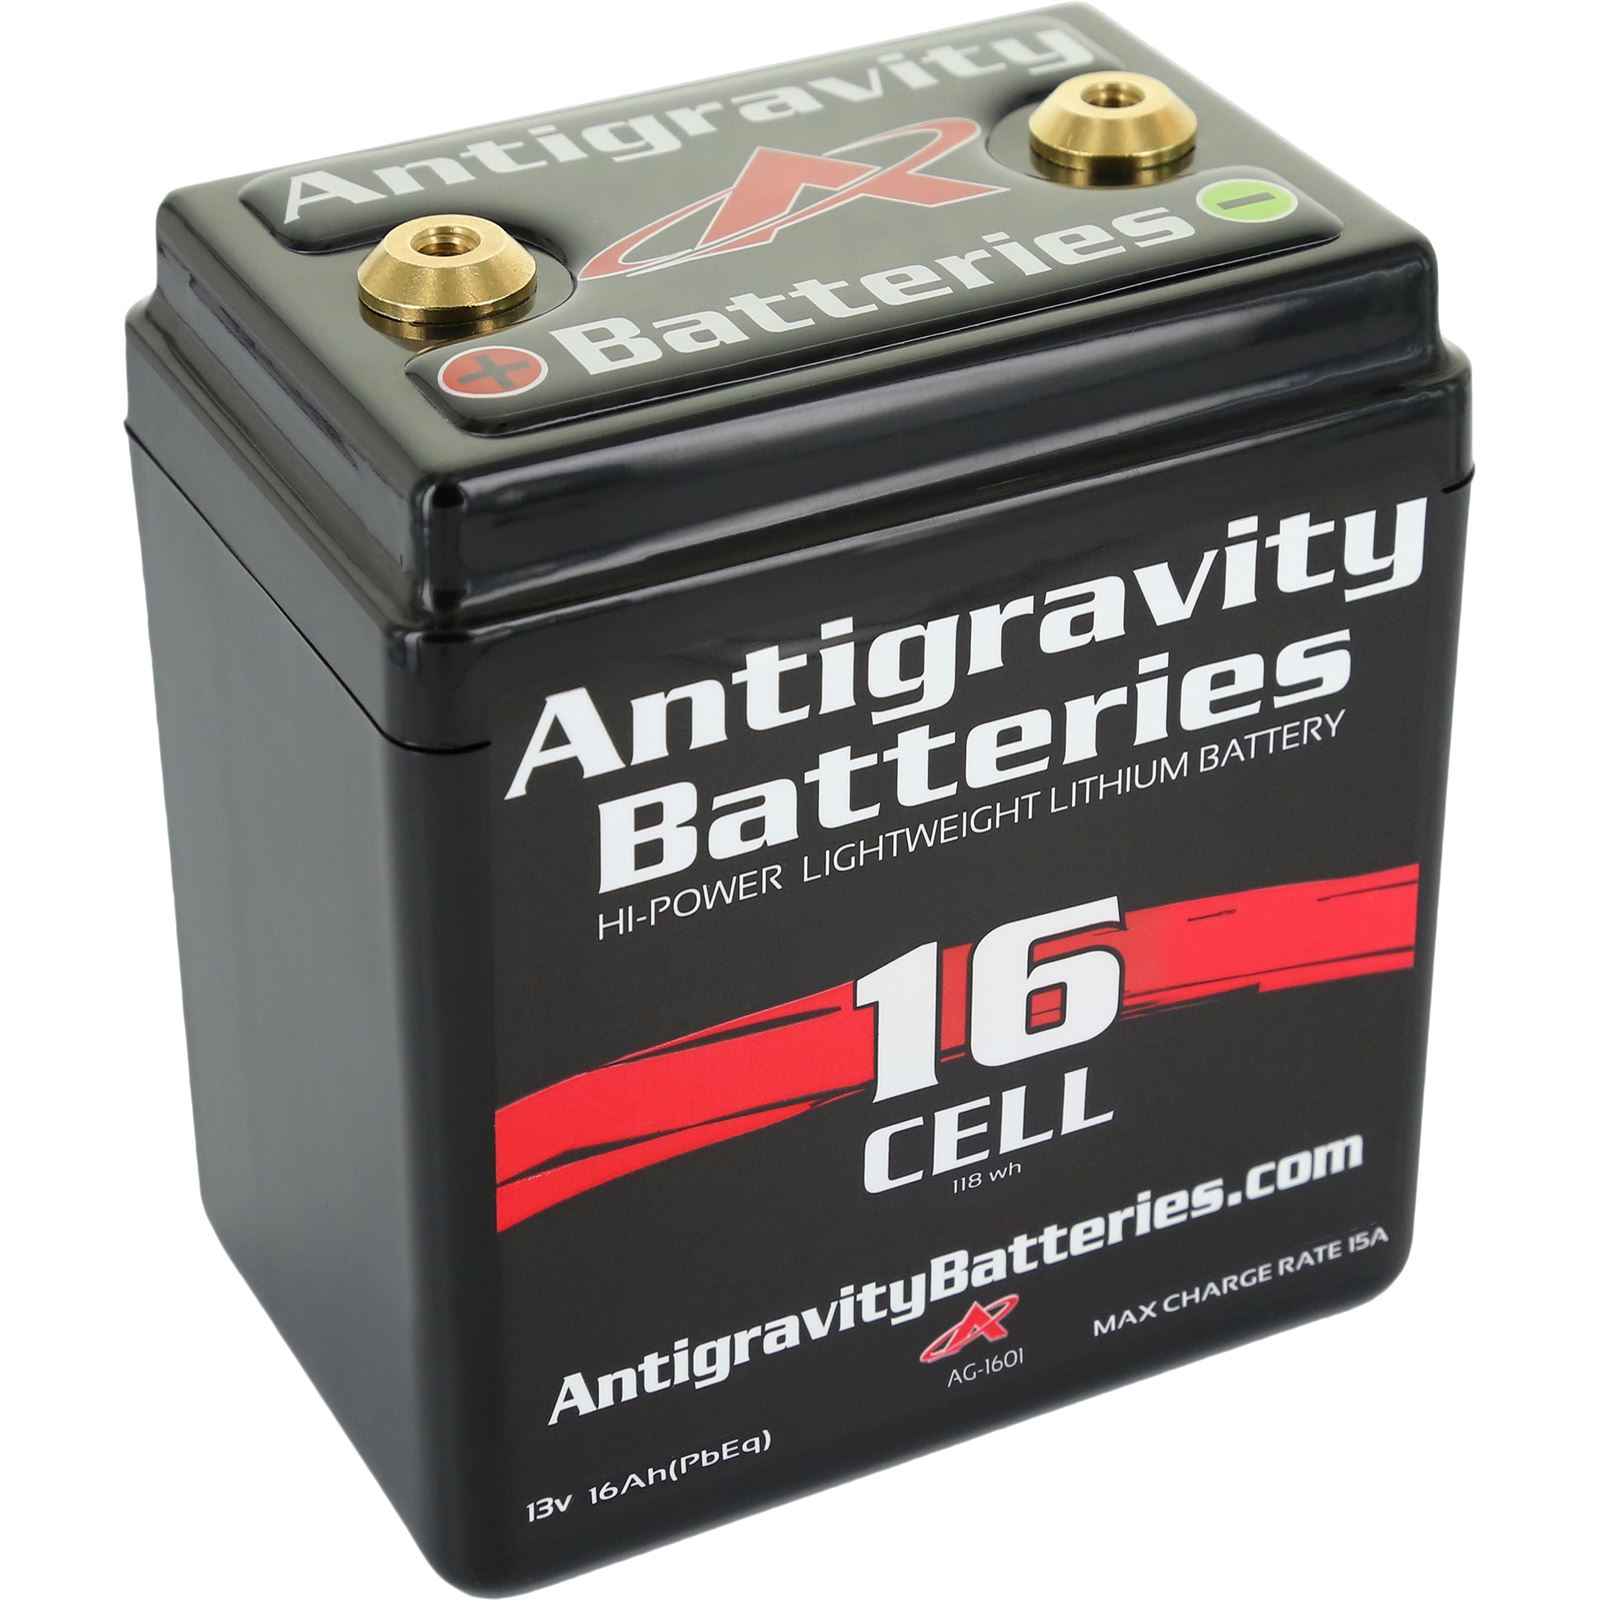 Antigravity Batteries Small Case Lithium Ion Battery